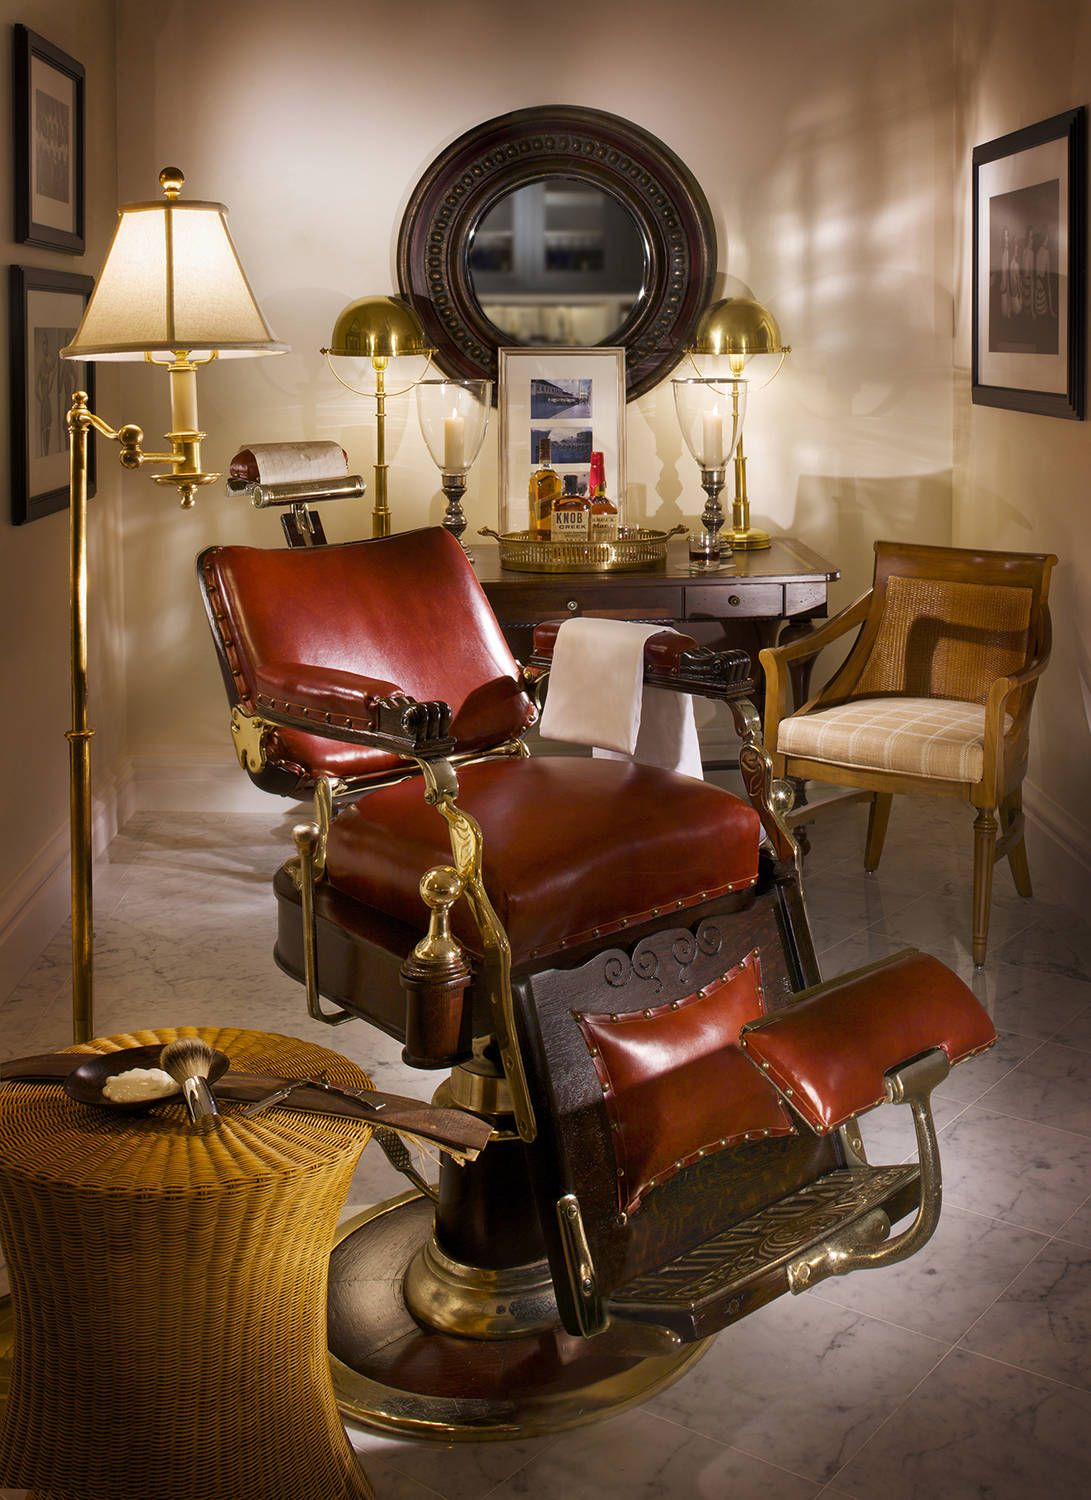 mobile barber chair stand test reference values images of tucker 39s point spa in bermuda stuff